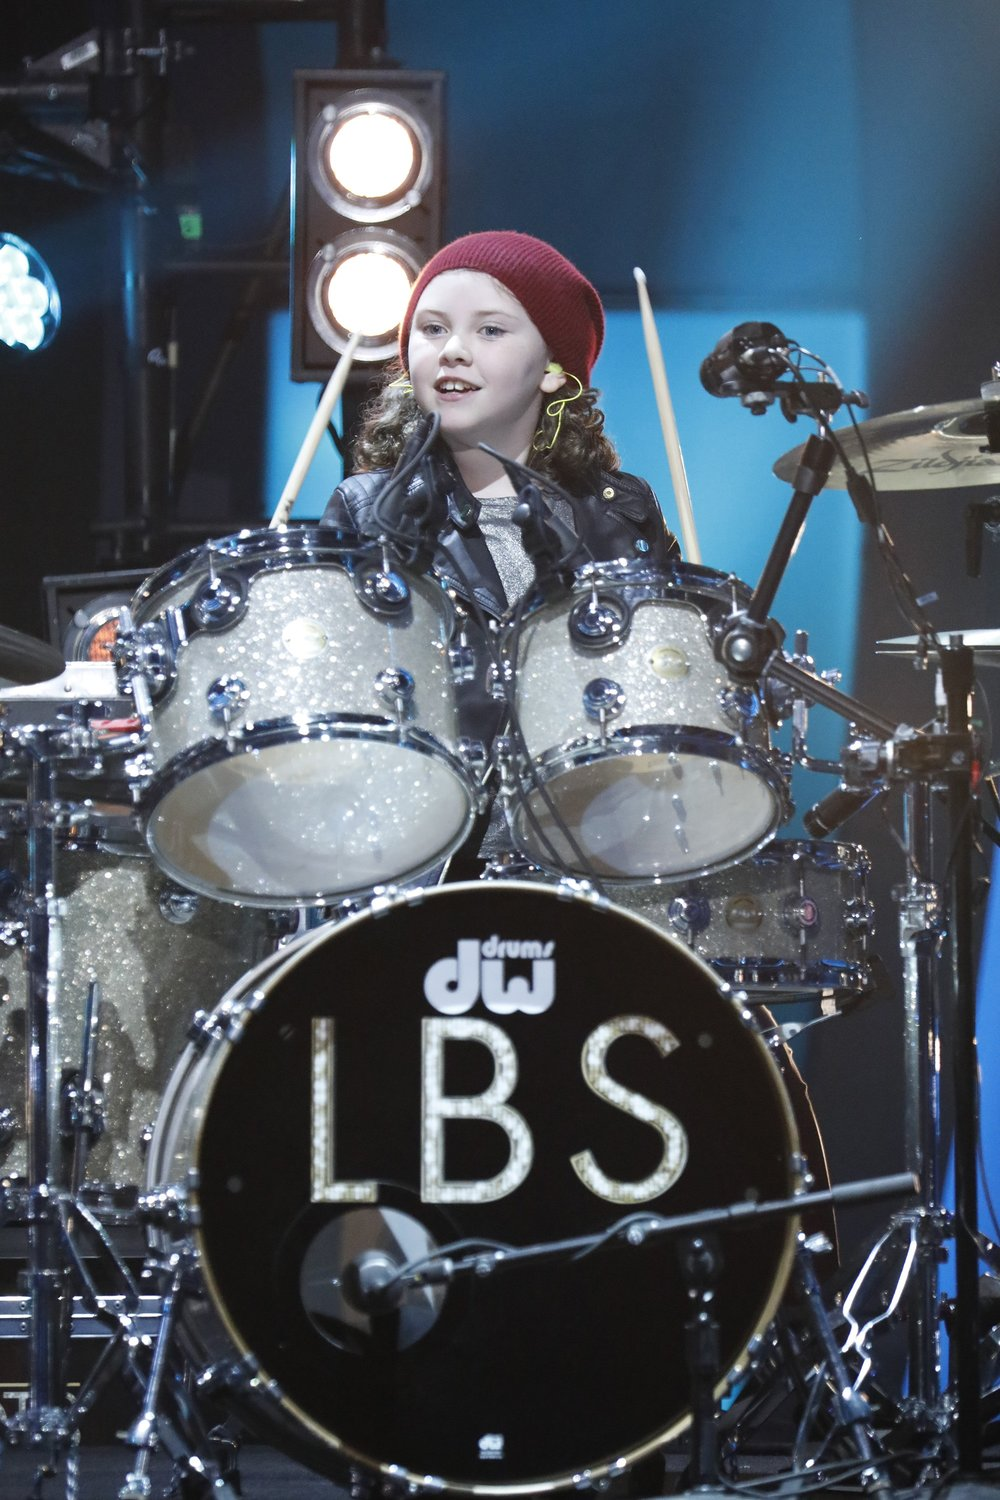 LITTLE BIG SHOTS DRUMMER MILANA S3 1.jpg